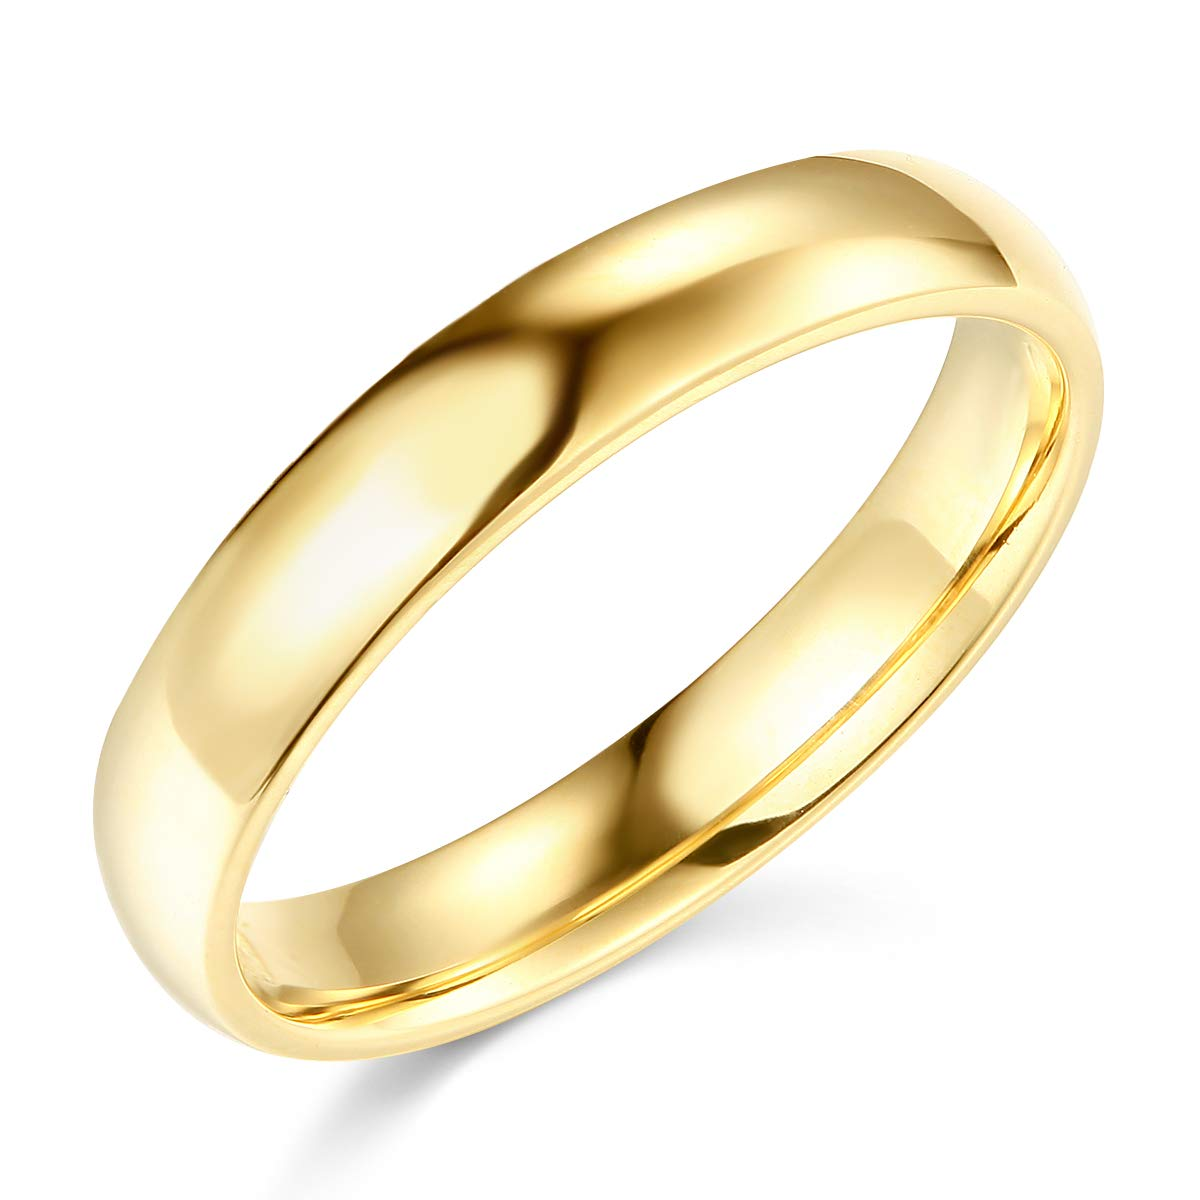 Wellingsale Ladies 14k Yellow Gold Solid 4mm CLASSIC FIT Traditional Wedding Band Ring - Size 4